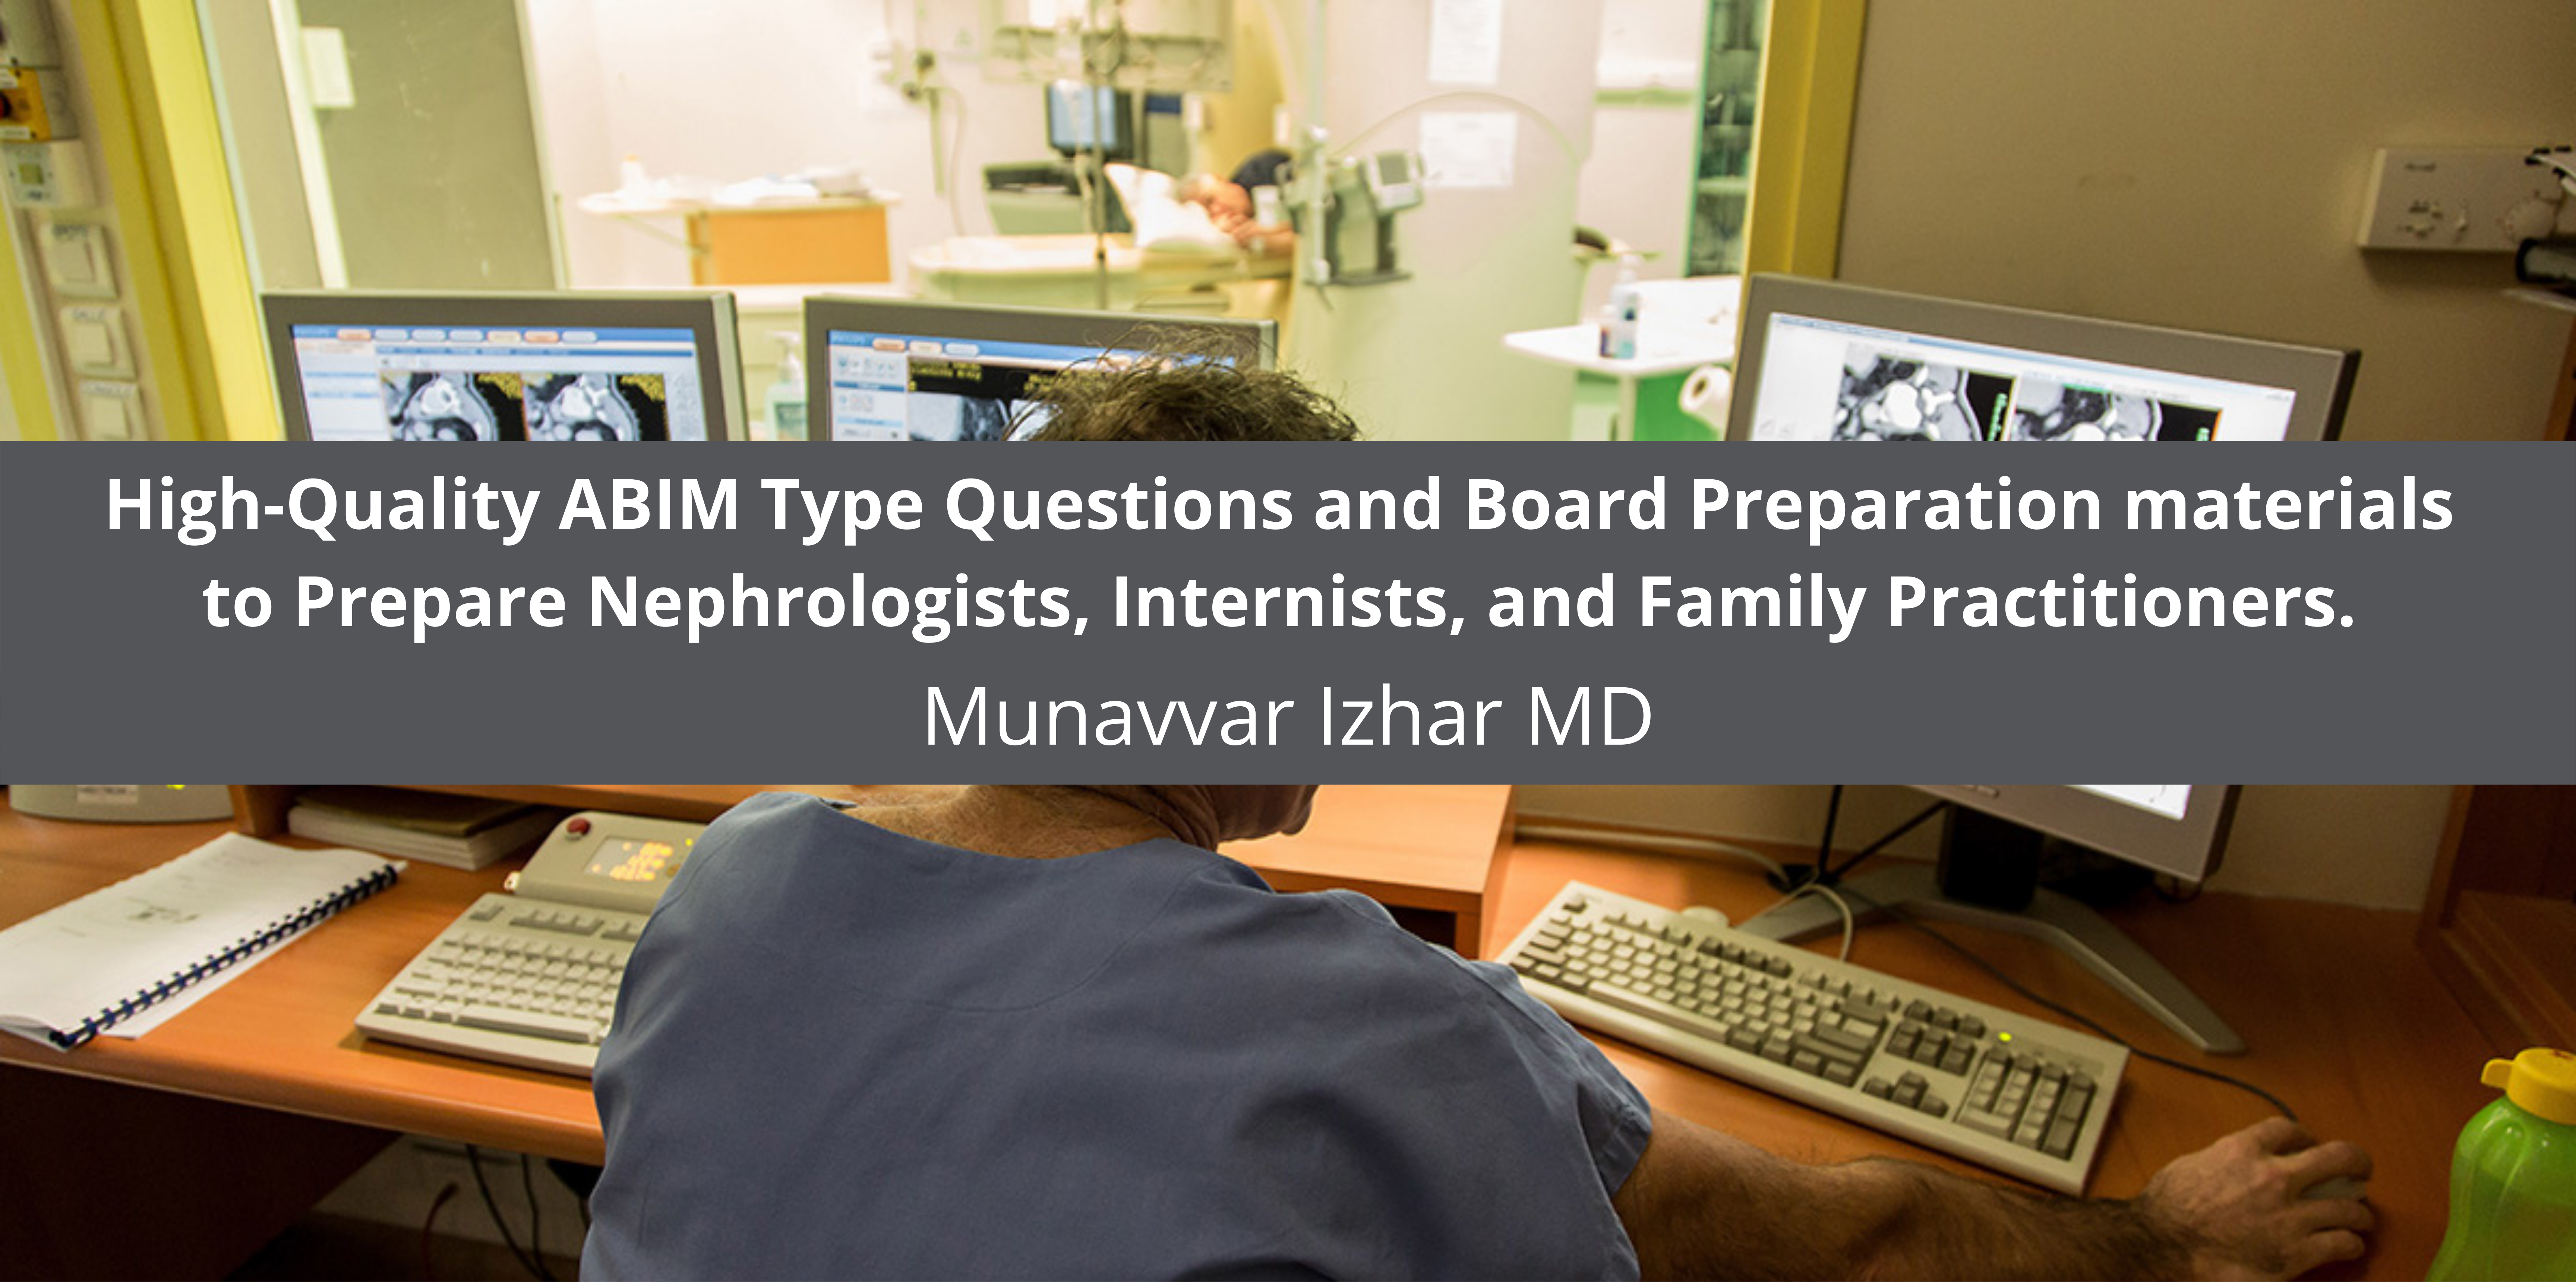 Munavvar Izhar MD creates High-Quality ABIM Type Questions and Board Preparation materials to Prepare Nephrologists, Internists, and Family Practitioners.